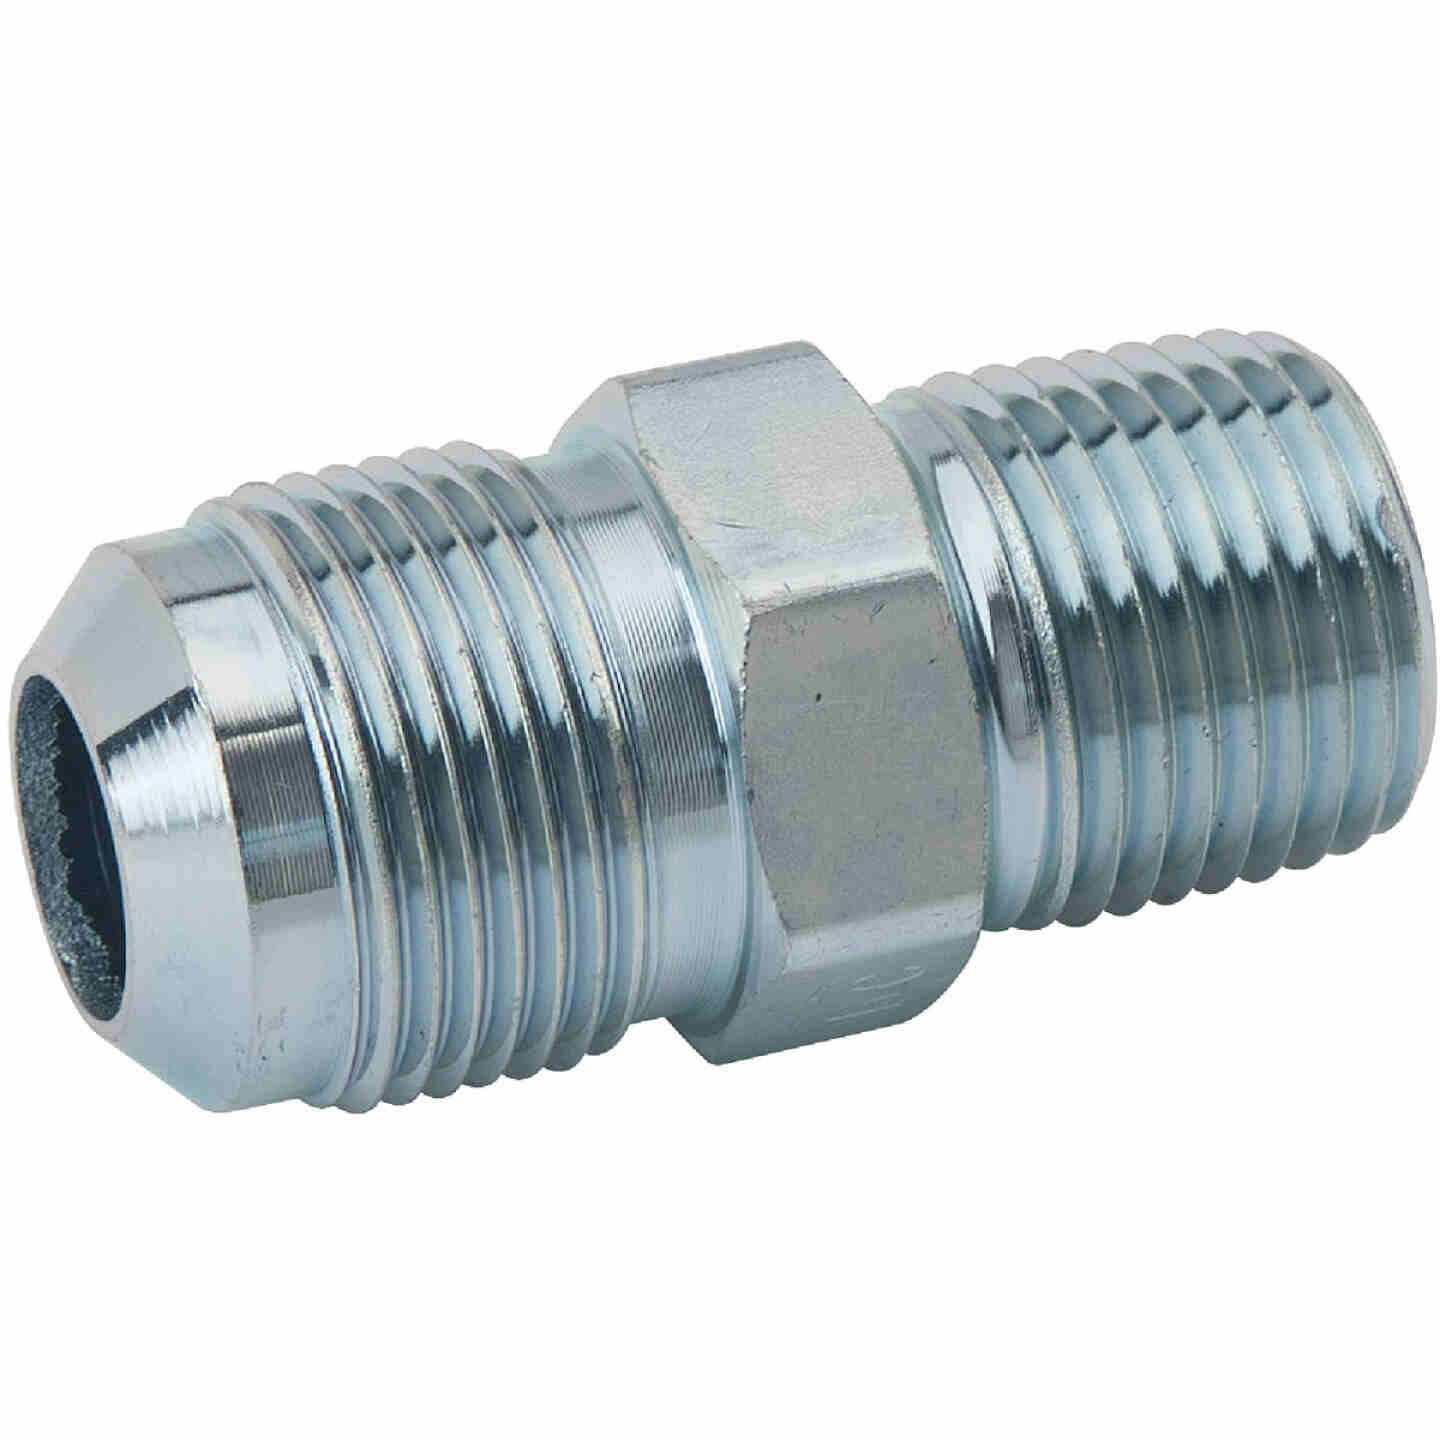 Dormont 5/8 In. OD Male Flare x 1/2 In. MIP (Tapped 3/8 In. FIP) Zinc-Plated Carbon Steel Adapter Gas Fitting, Bulk Image 1